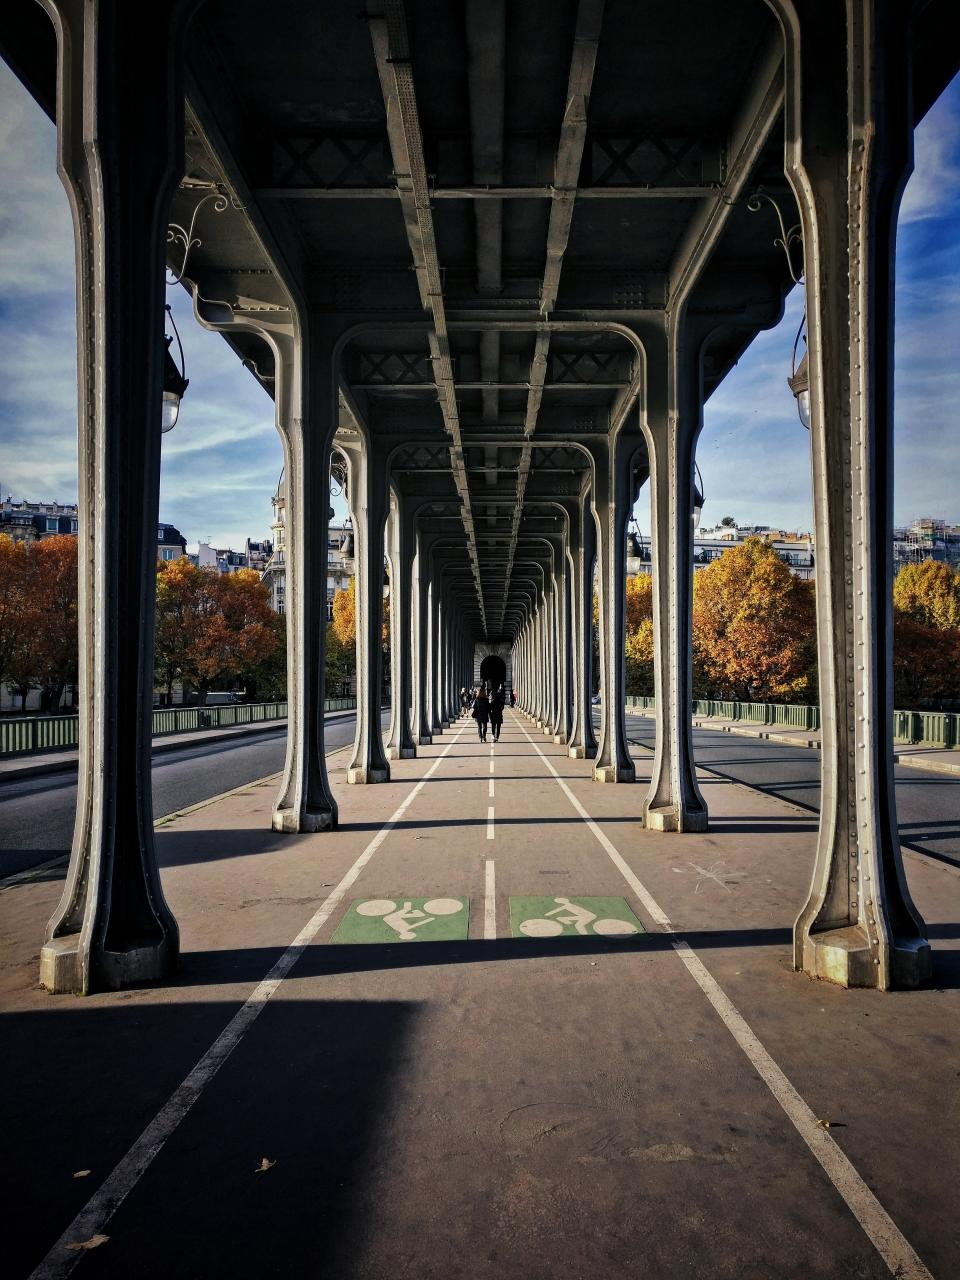 bridge urban city people couple happy walking architecture infrastructure structure trees autumn fall building